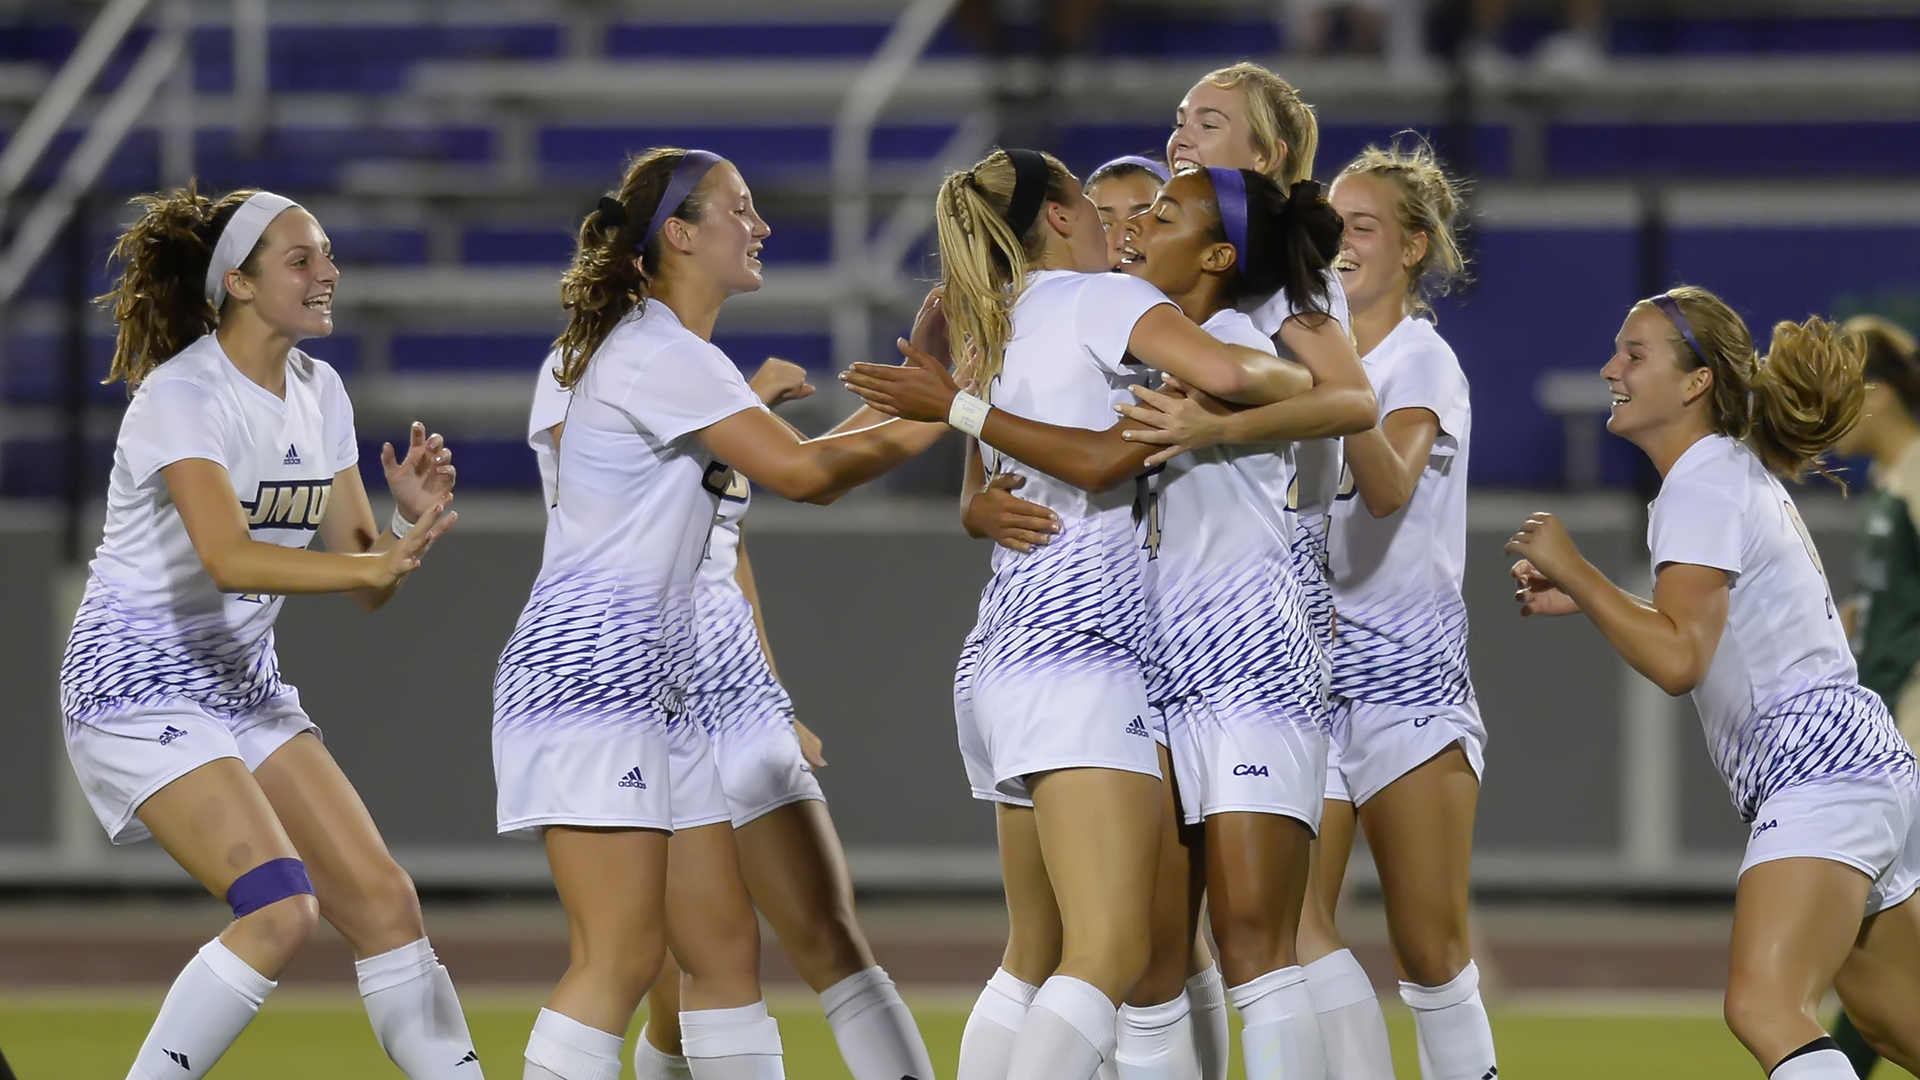 Women's Soccer: Dukes Open CAA Play With 2-0 Win Over W&M)